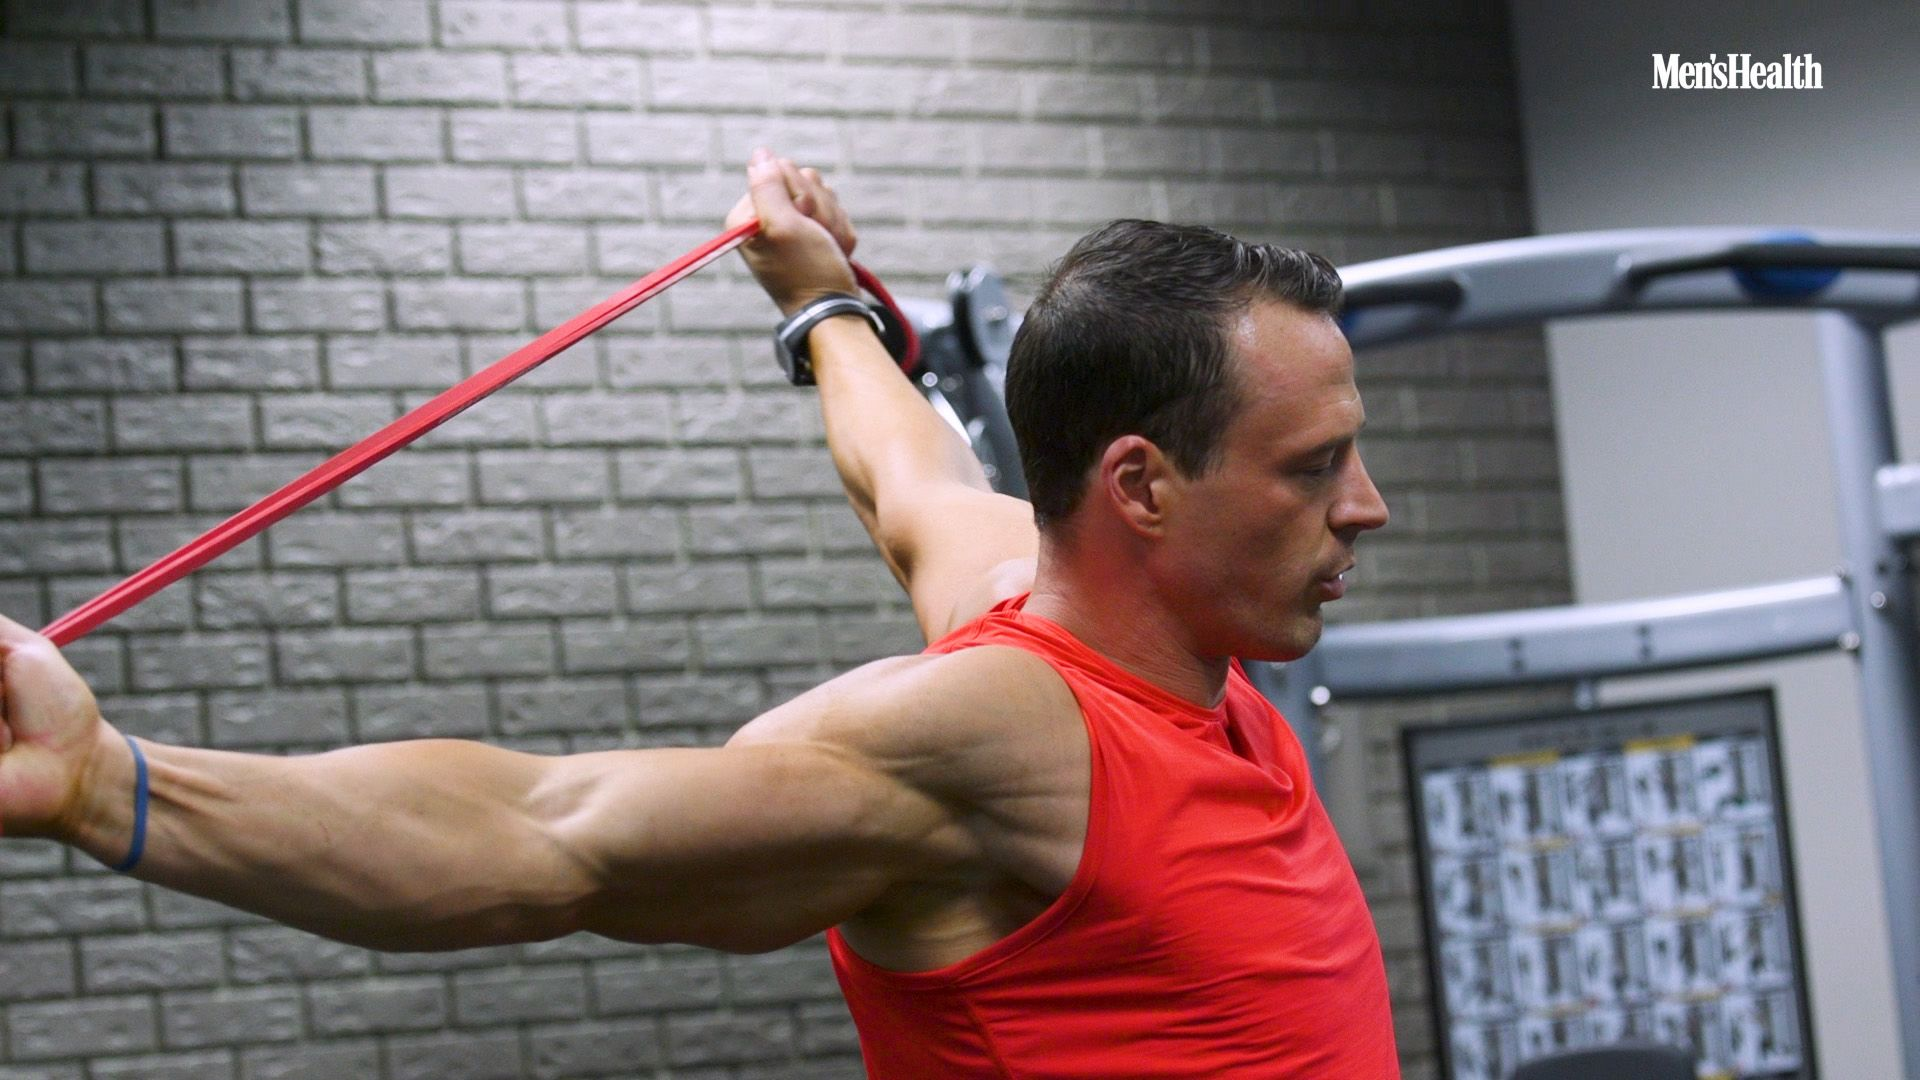 Warm Up to Get Action Hero Jacked With These 8 Mobility Moves